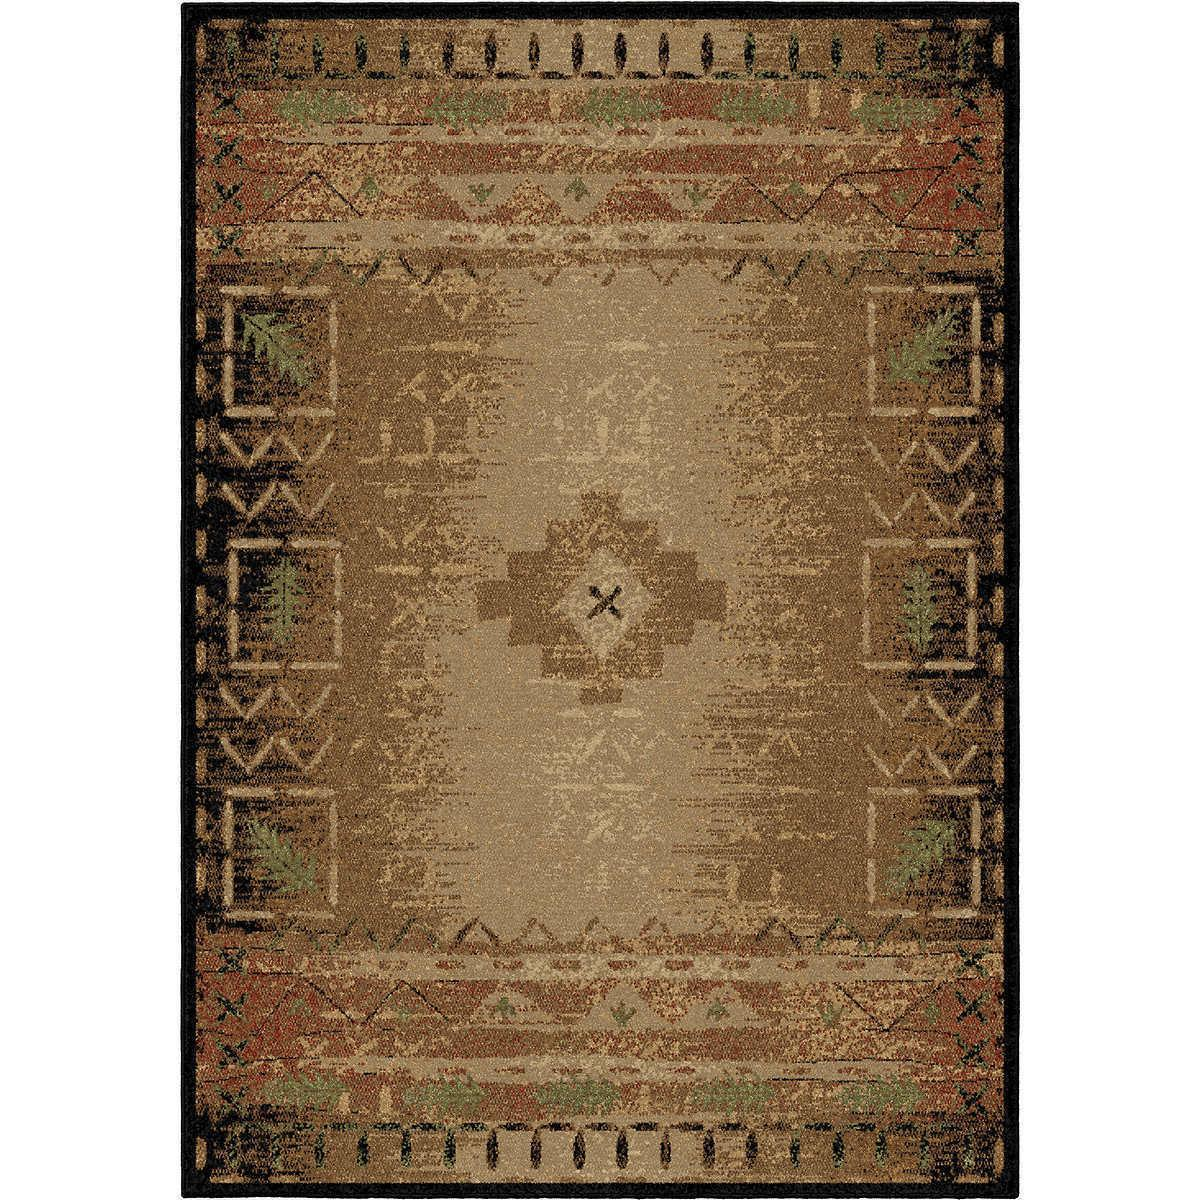 RUGS AREA RUGS BIG CUTE SOUTHWESTERN RUGS